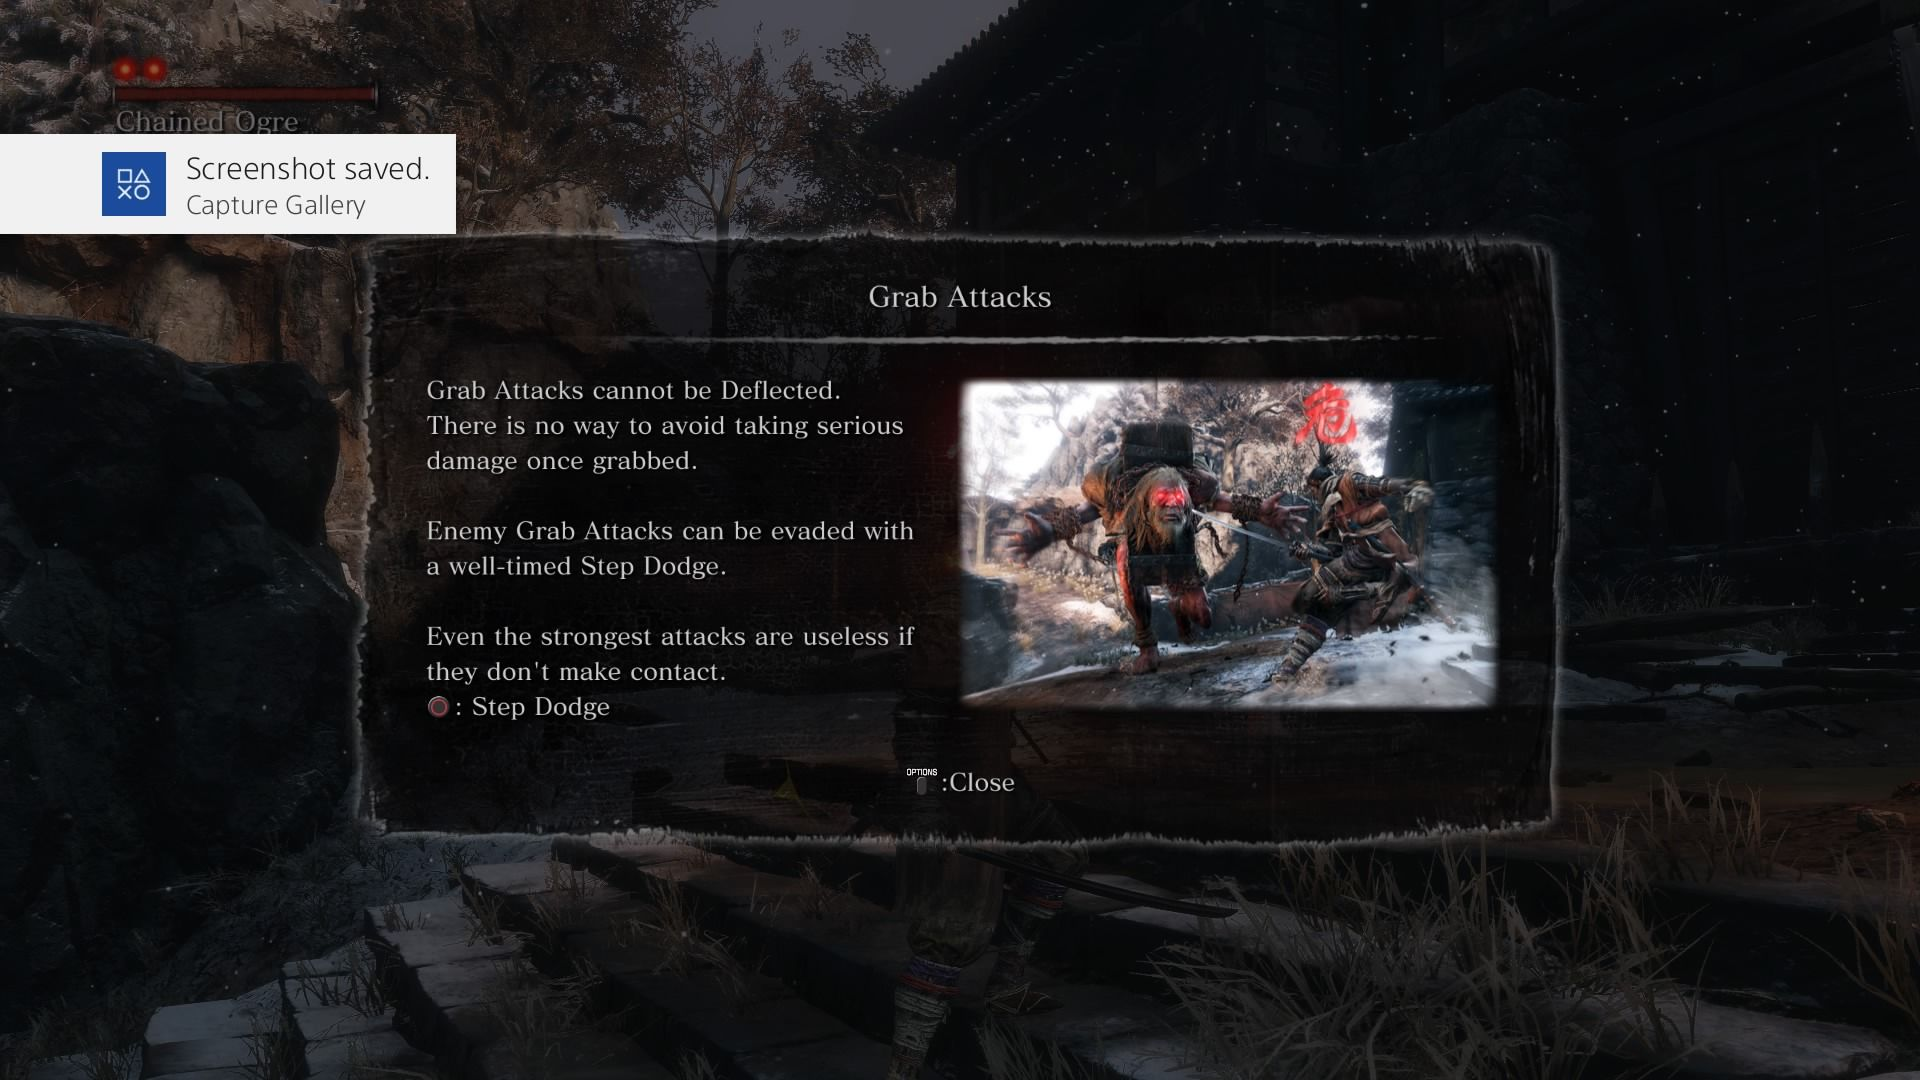 Sekiro' Bosses Guide: How to Beat the Chained Ogre